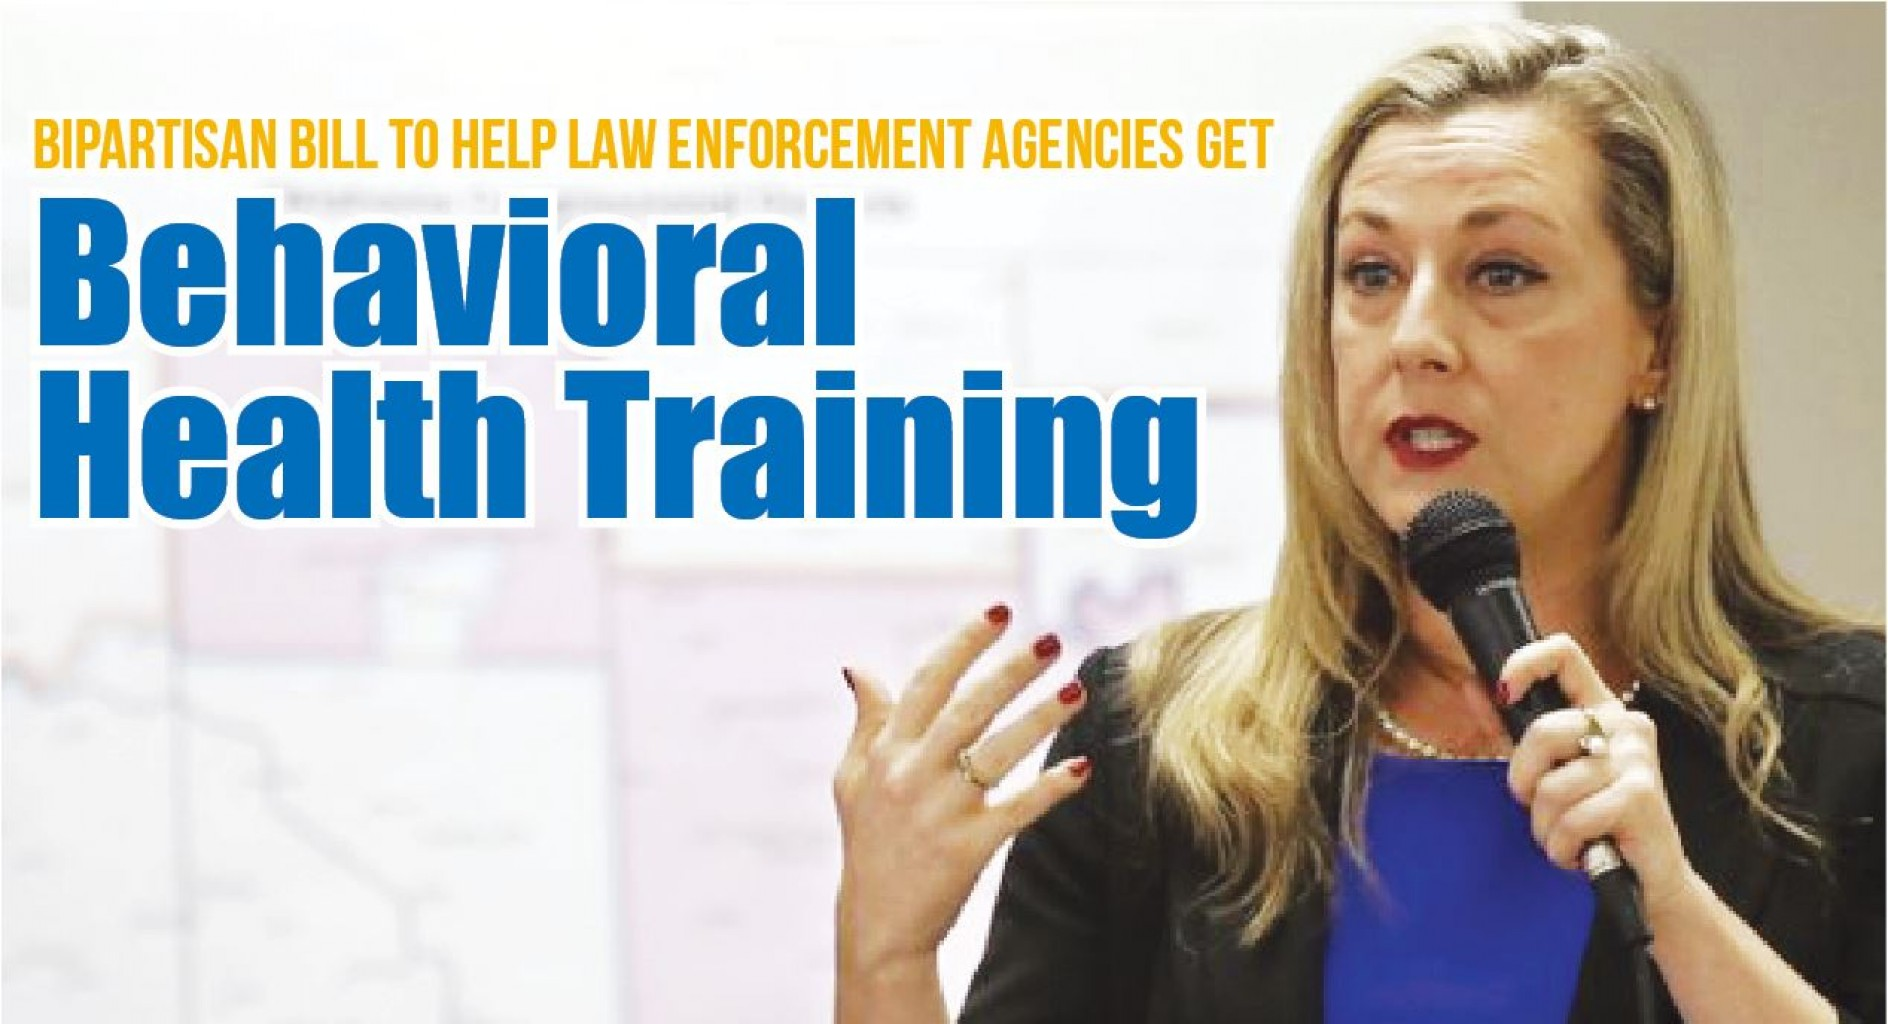 Bipartisan bill to help Law enforcement agencies get  Behavioral Health Training